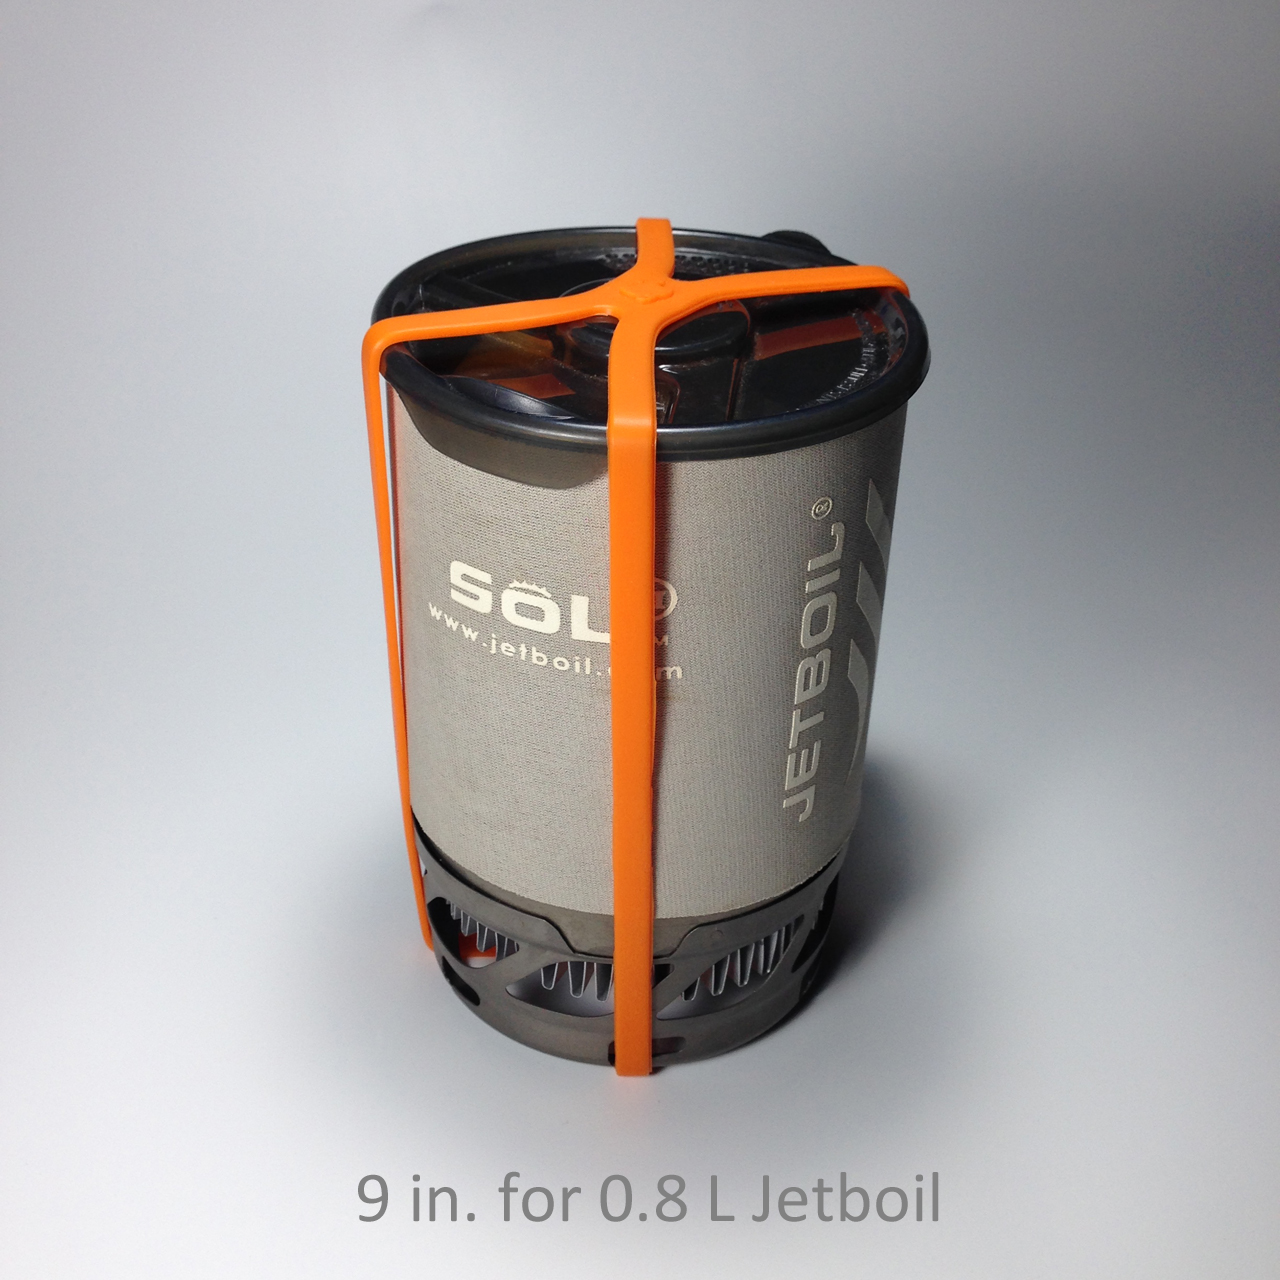 cross-band-9in-0.8ljetboil.jpg